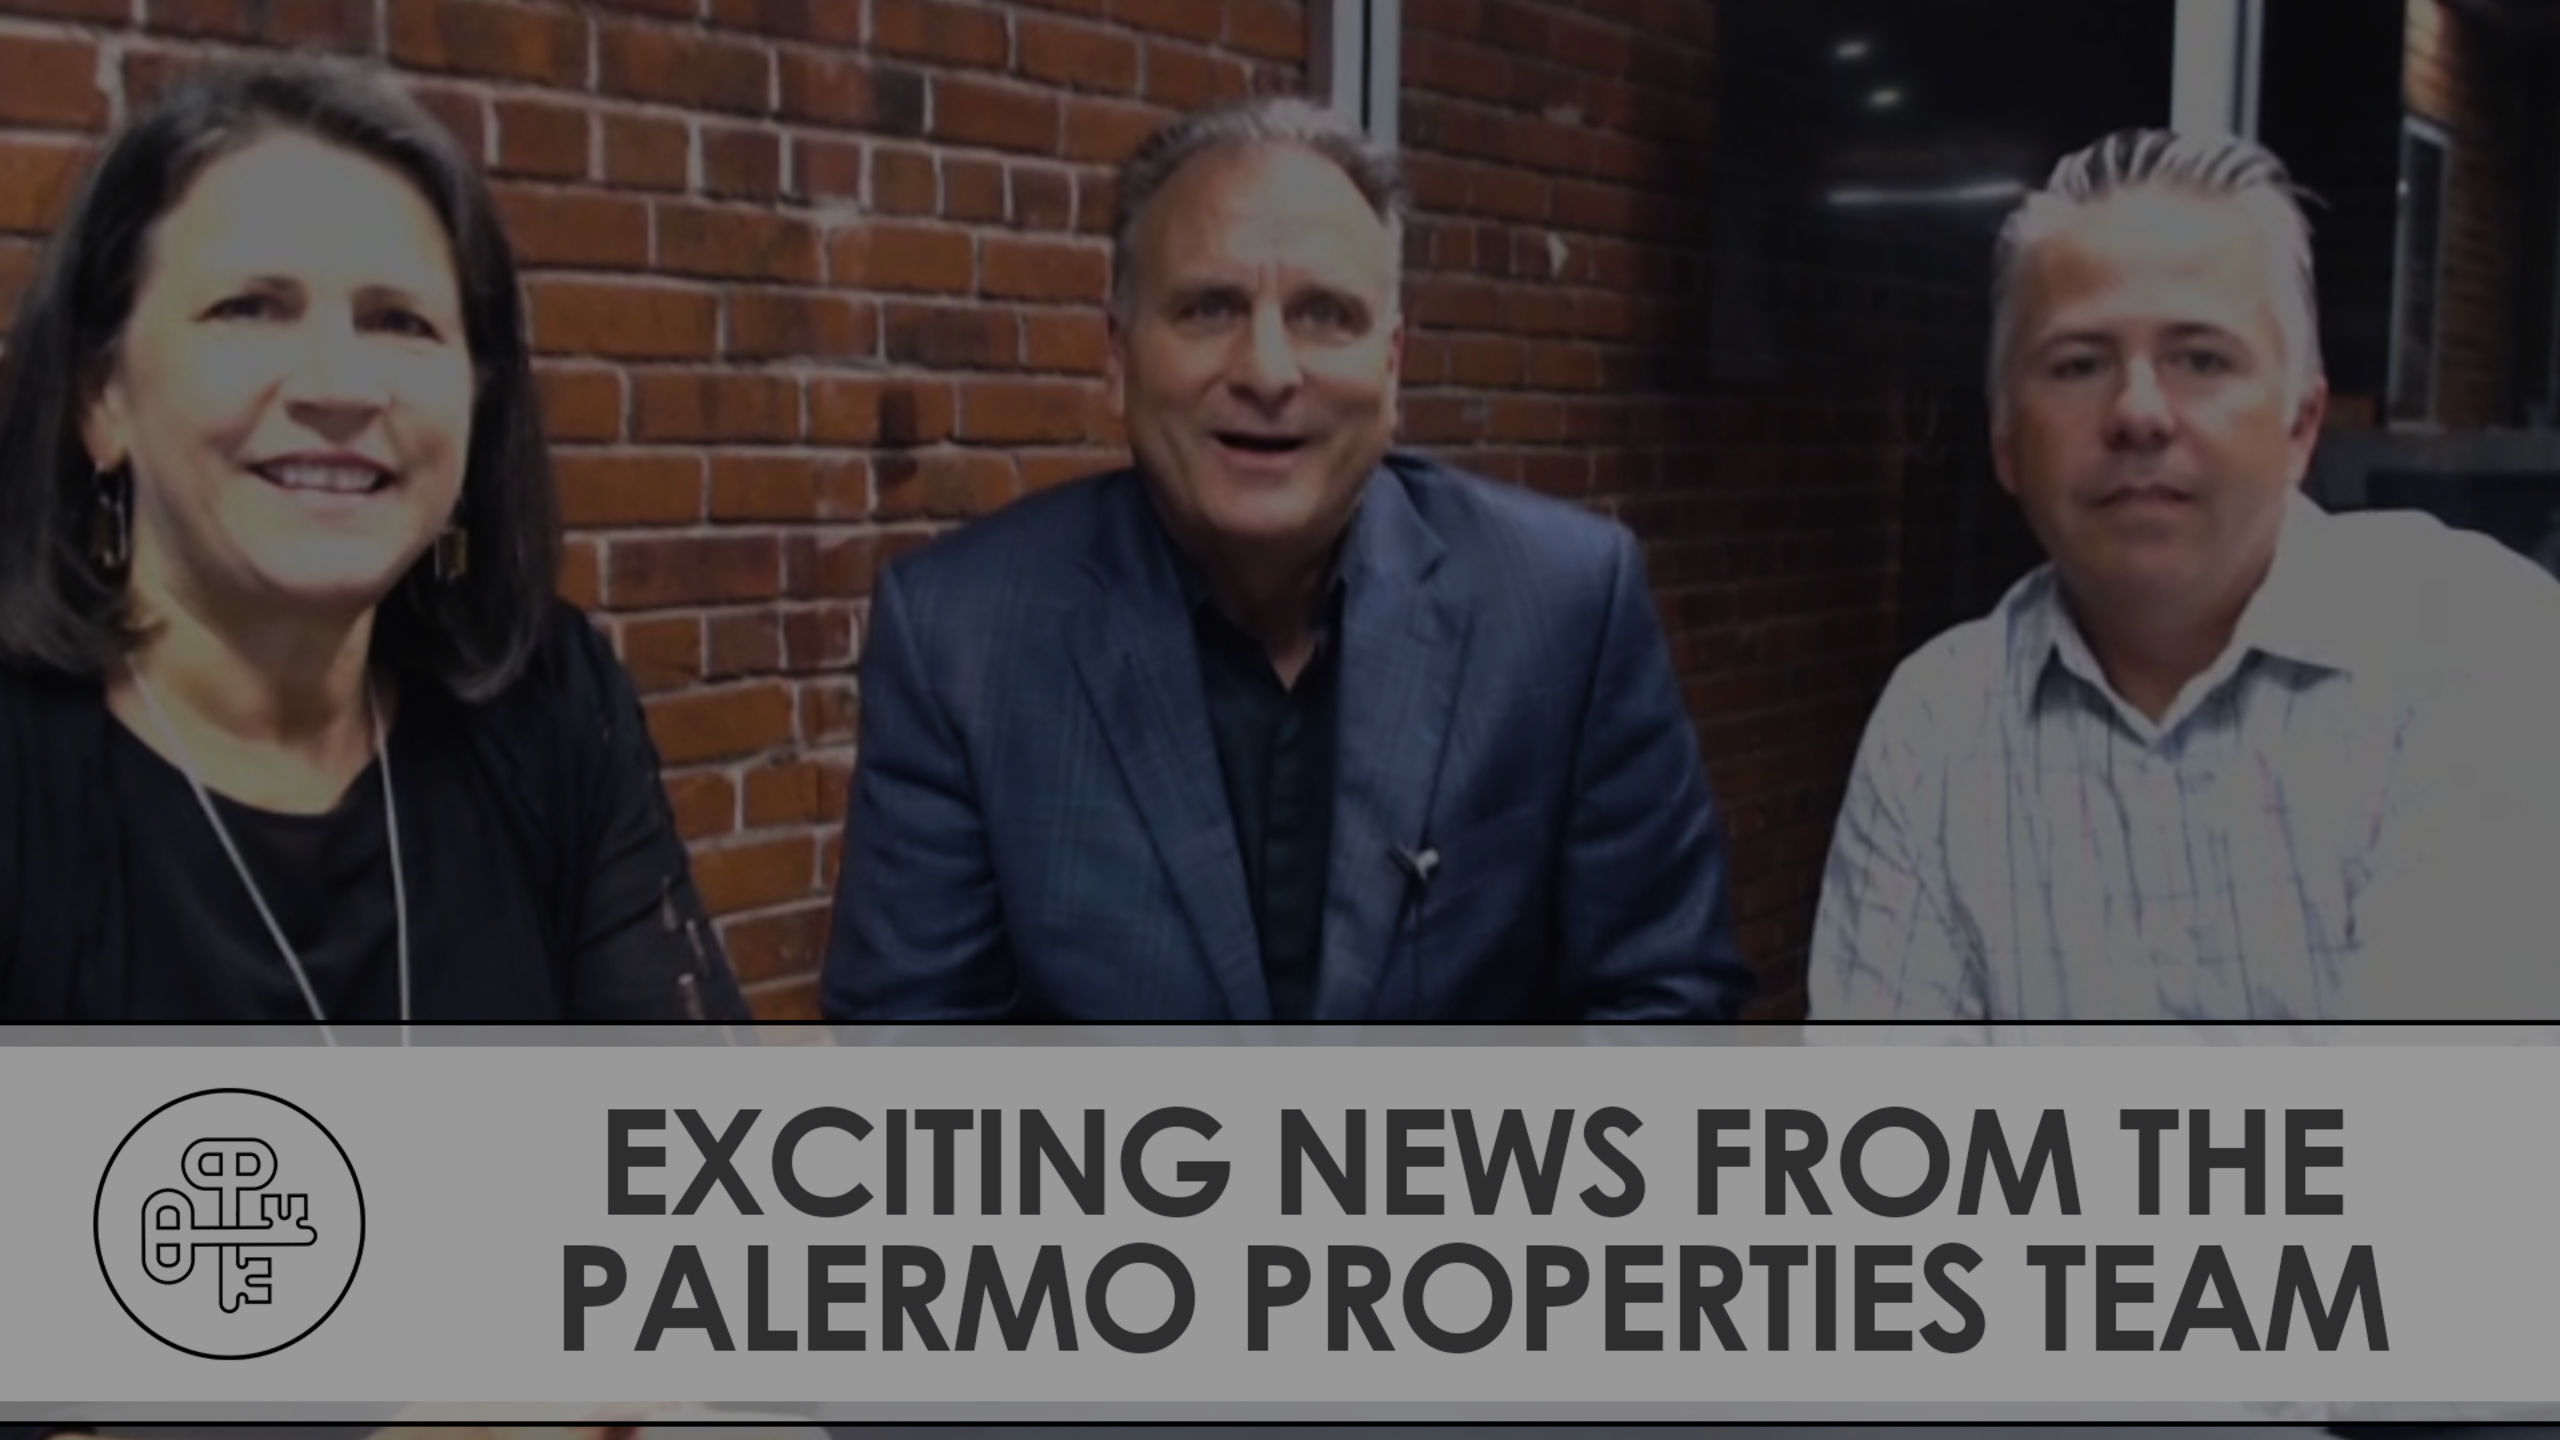 Exciting Changes Are Happening at the Palermo Properties Team